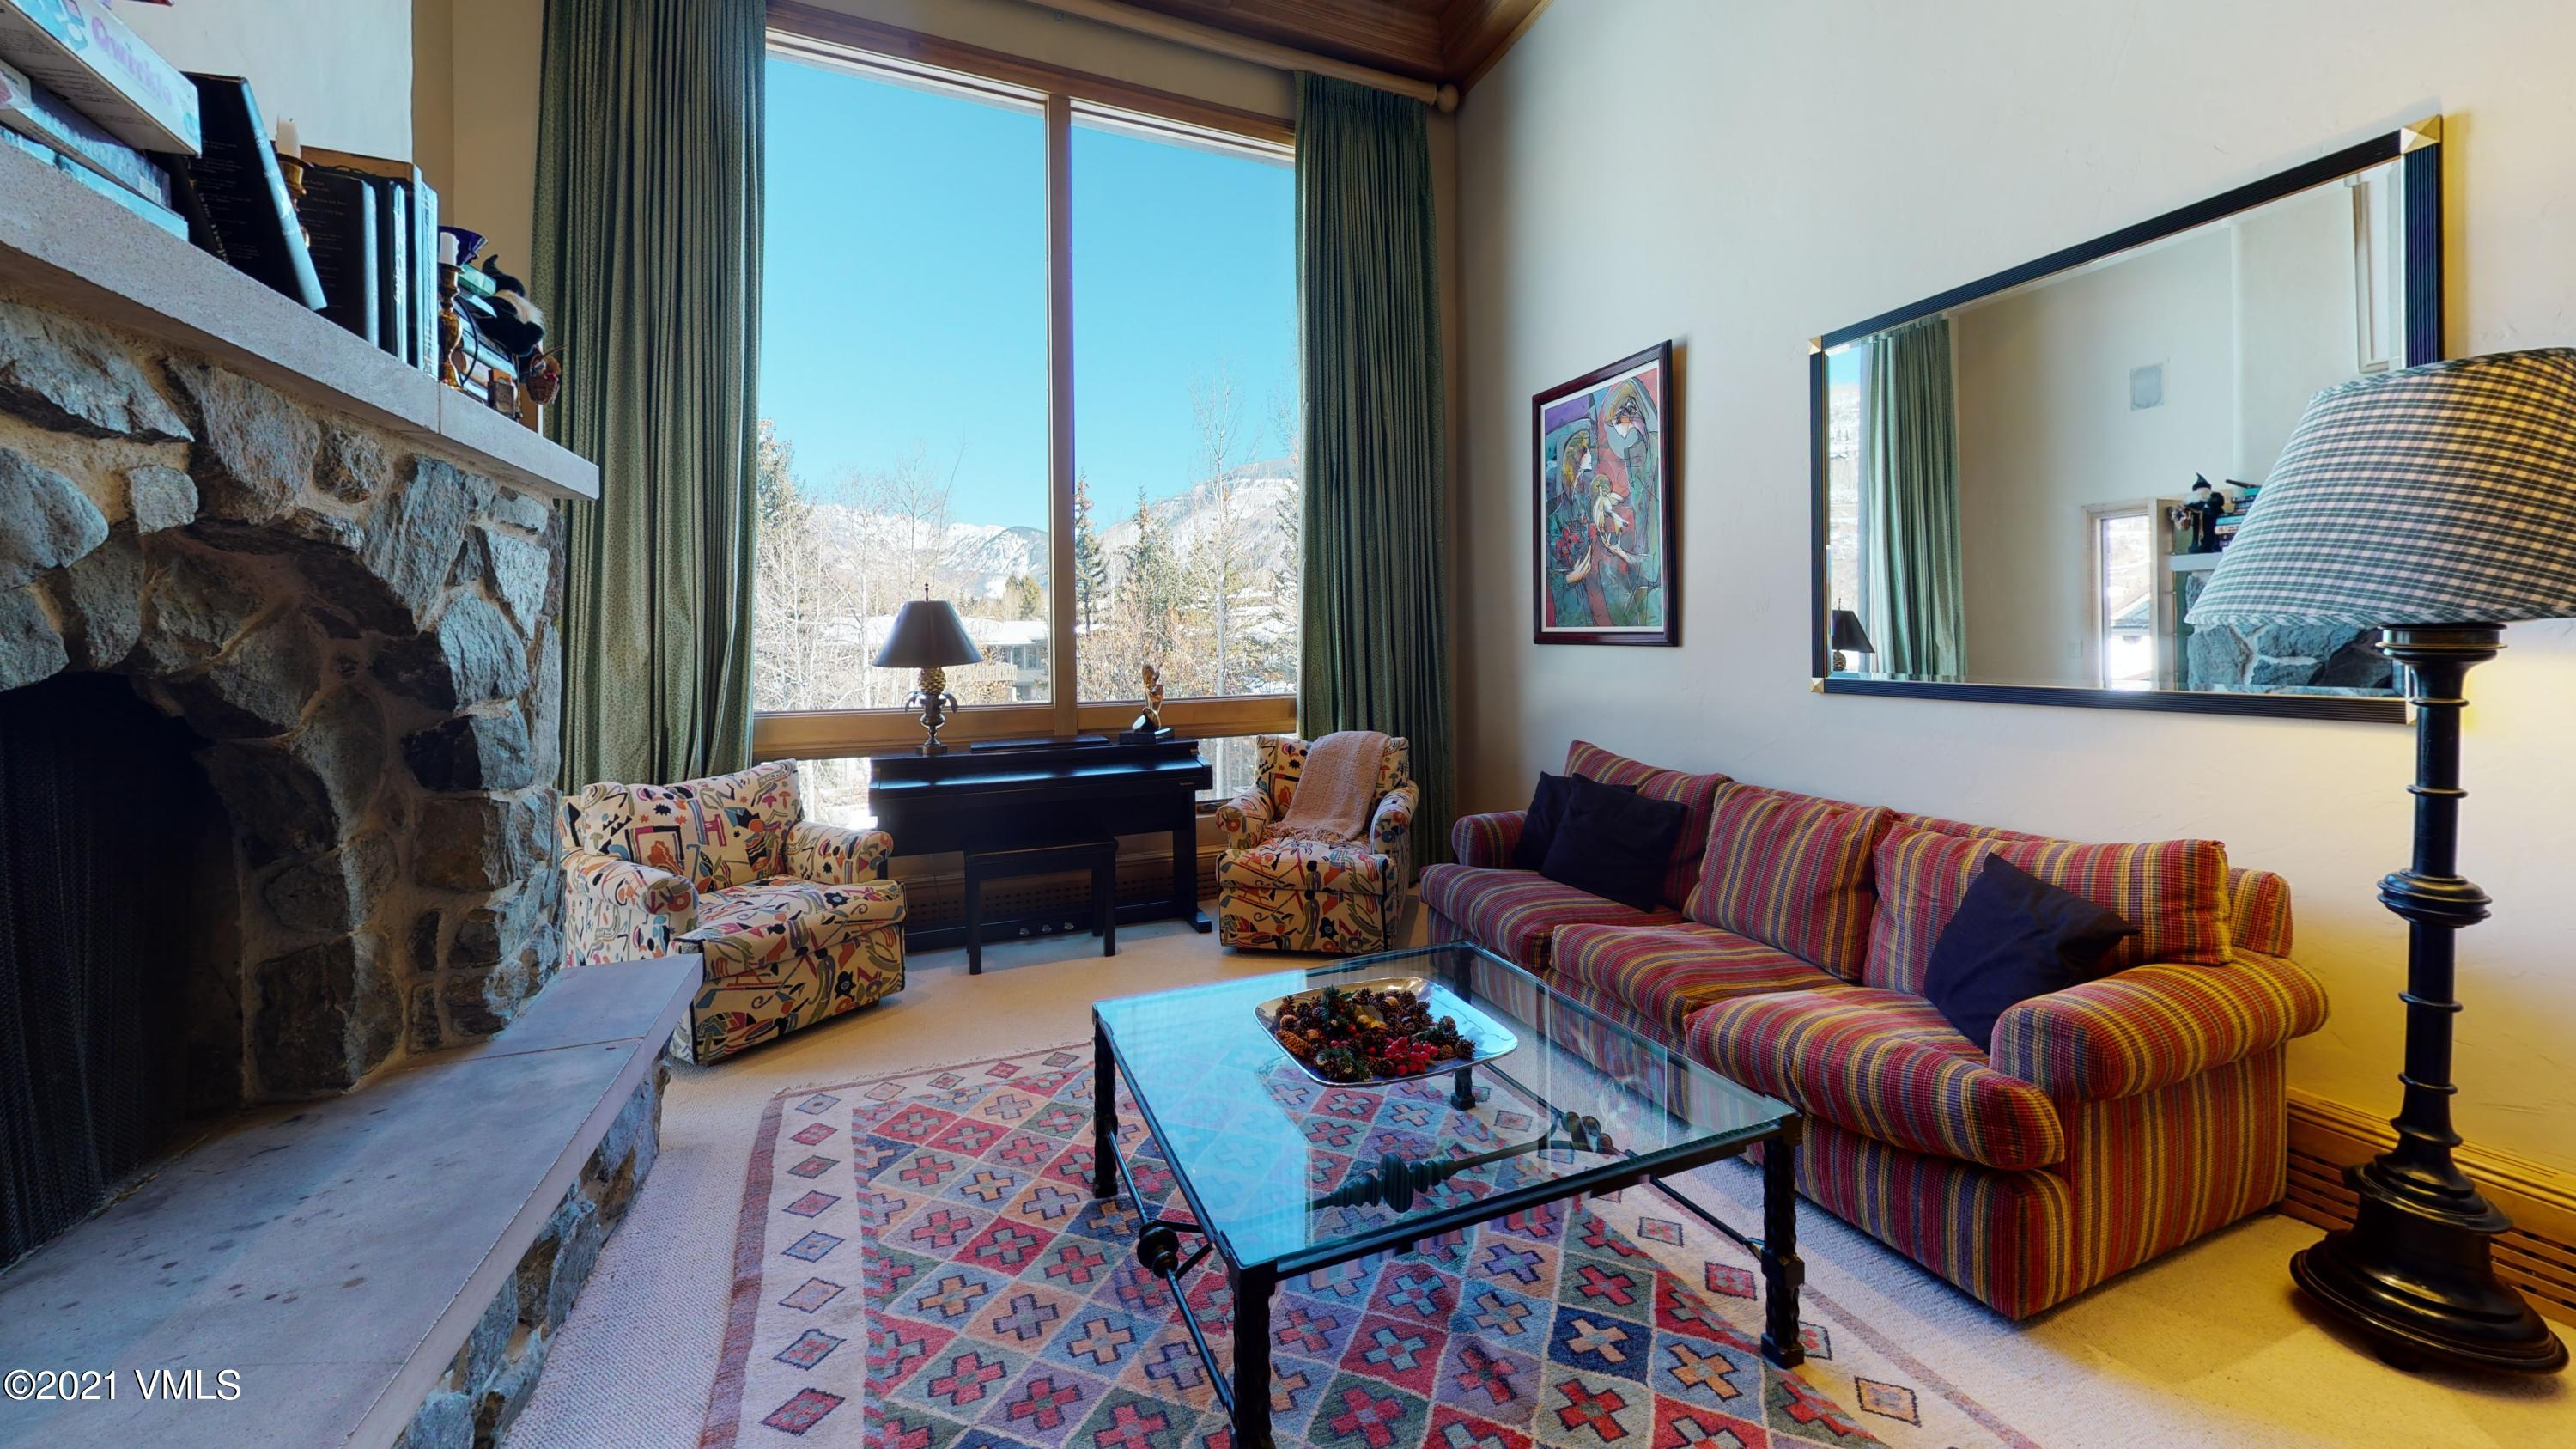 Rarely available Lodge at Vail three bedroom condominium with vaulted ceilings and views of the Gore Range. Fantastic amenity package with garage parking, spa, workout facilities, and two of Vail's best pools. The Lodge also offers an outstanding rental program.